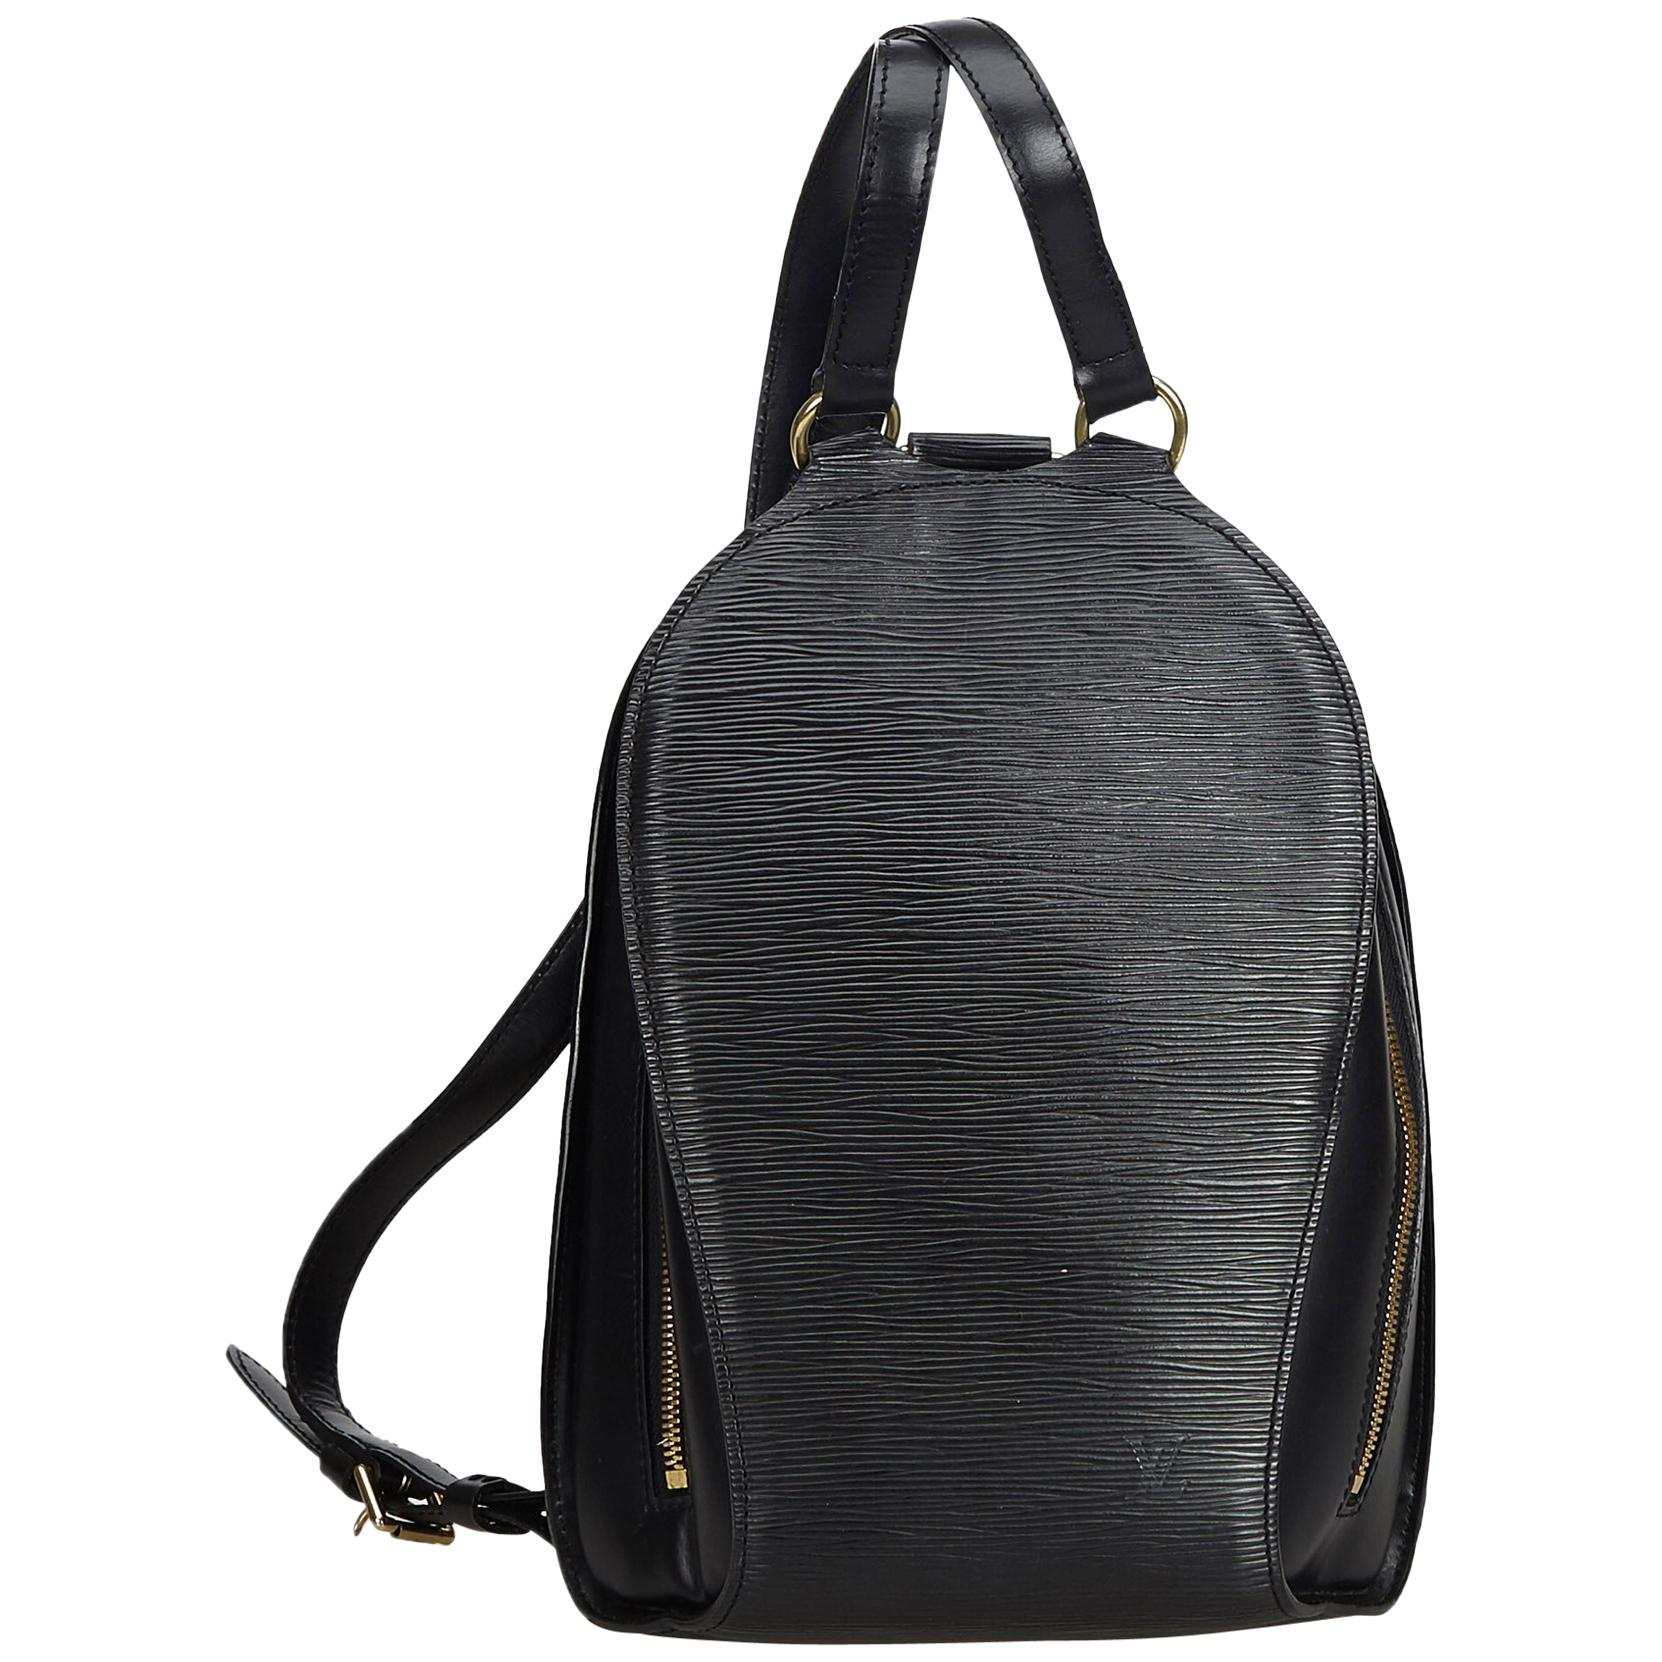 00174b3fd718 20th Century Backpacks - 128 For Sale at 1stdibs - Page 2